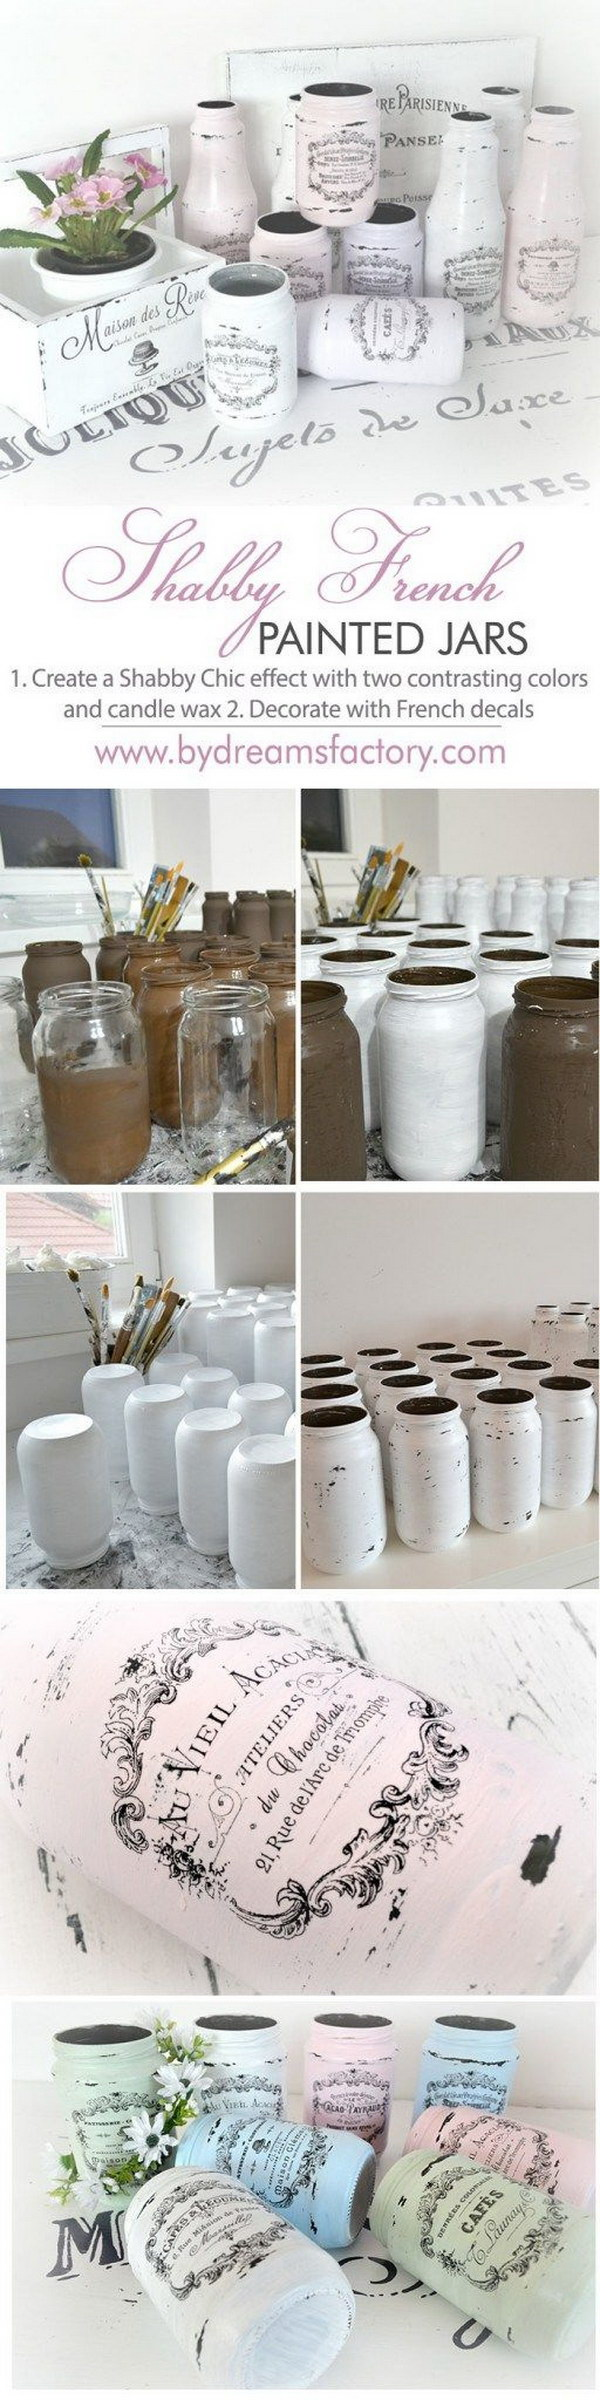 Shabby French Painted Jars.